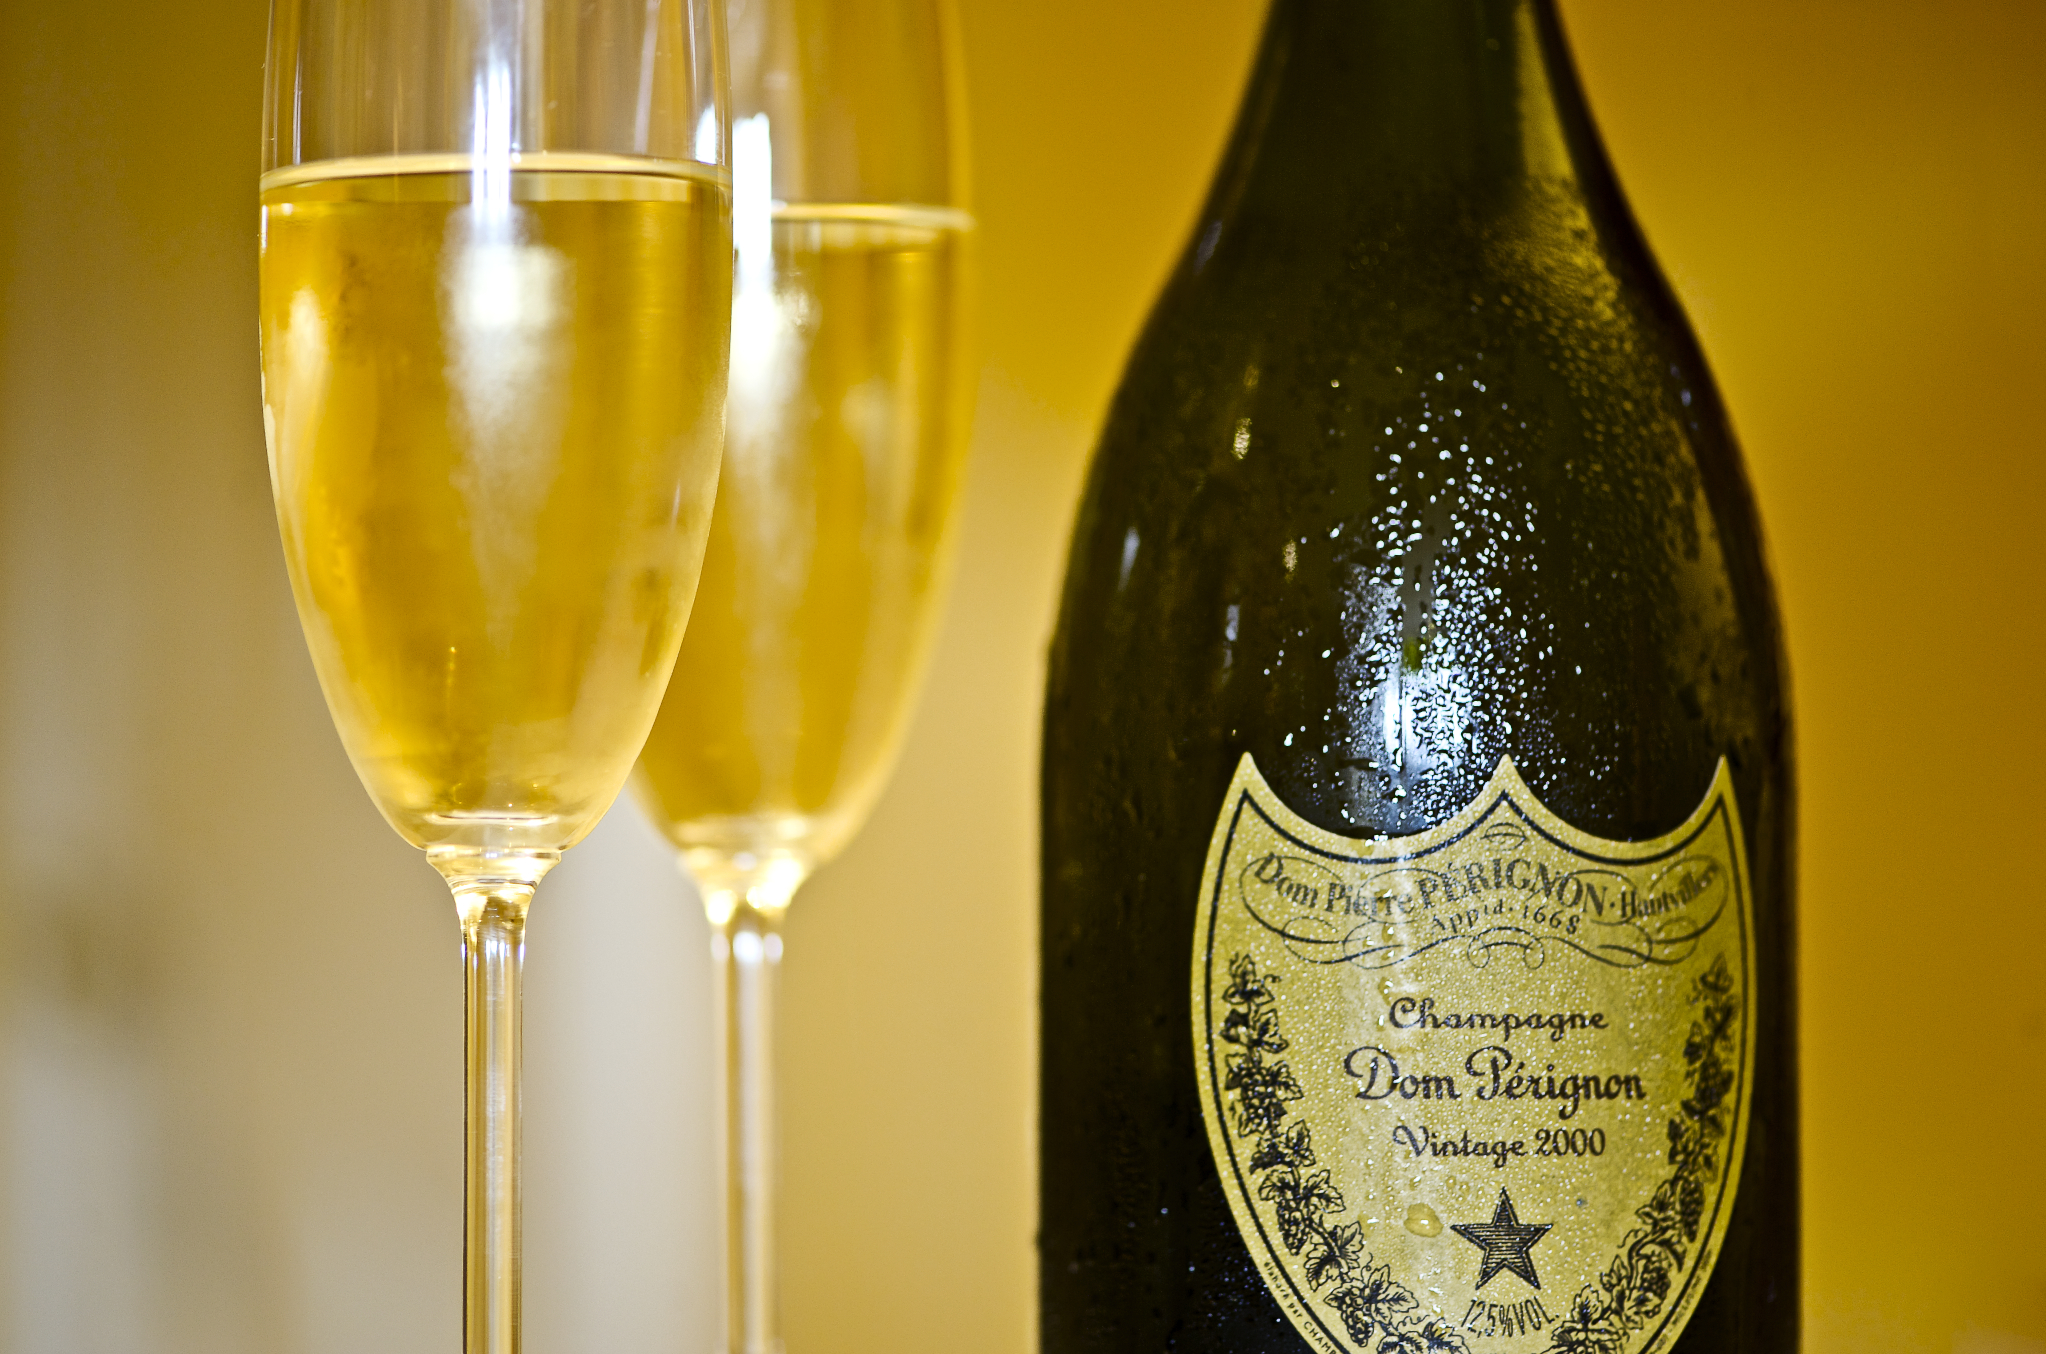 Dom-Perignon-2000-Champagne-Ideal-wine-company-review.jpg